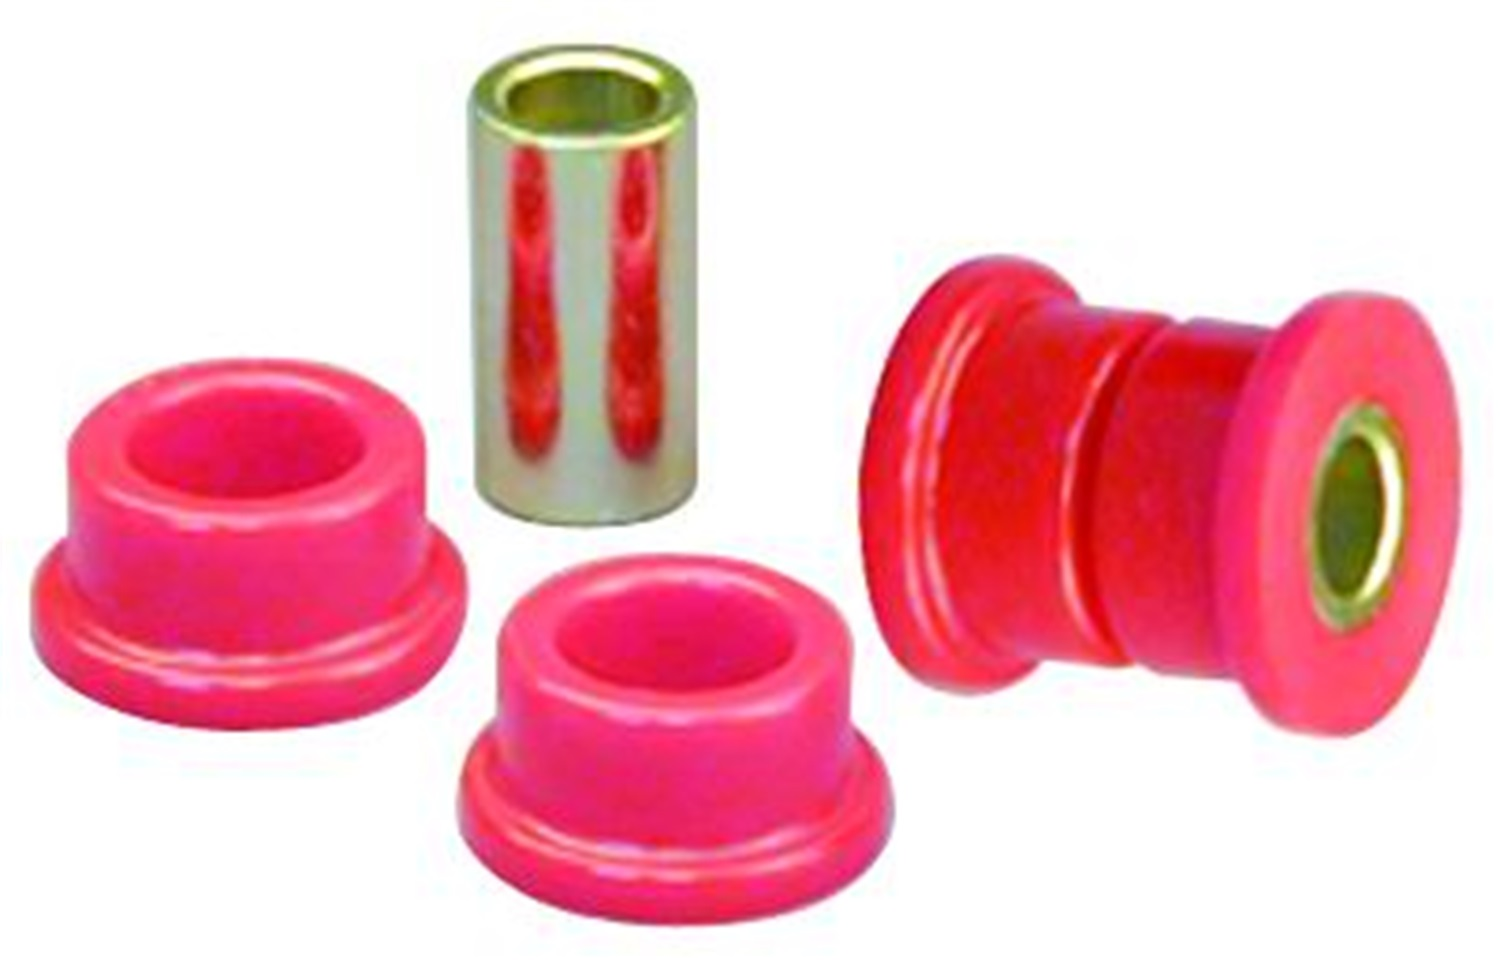 Prothane 19-605 Pivot Bushings